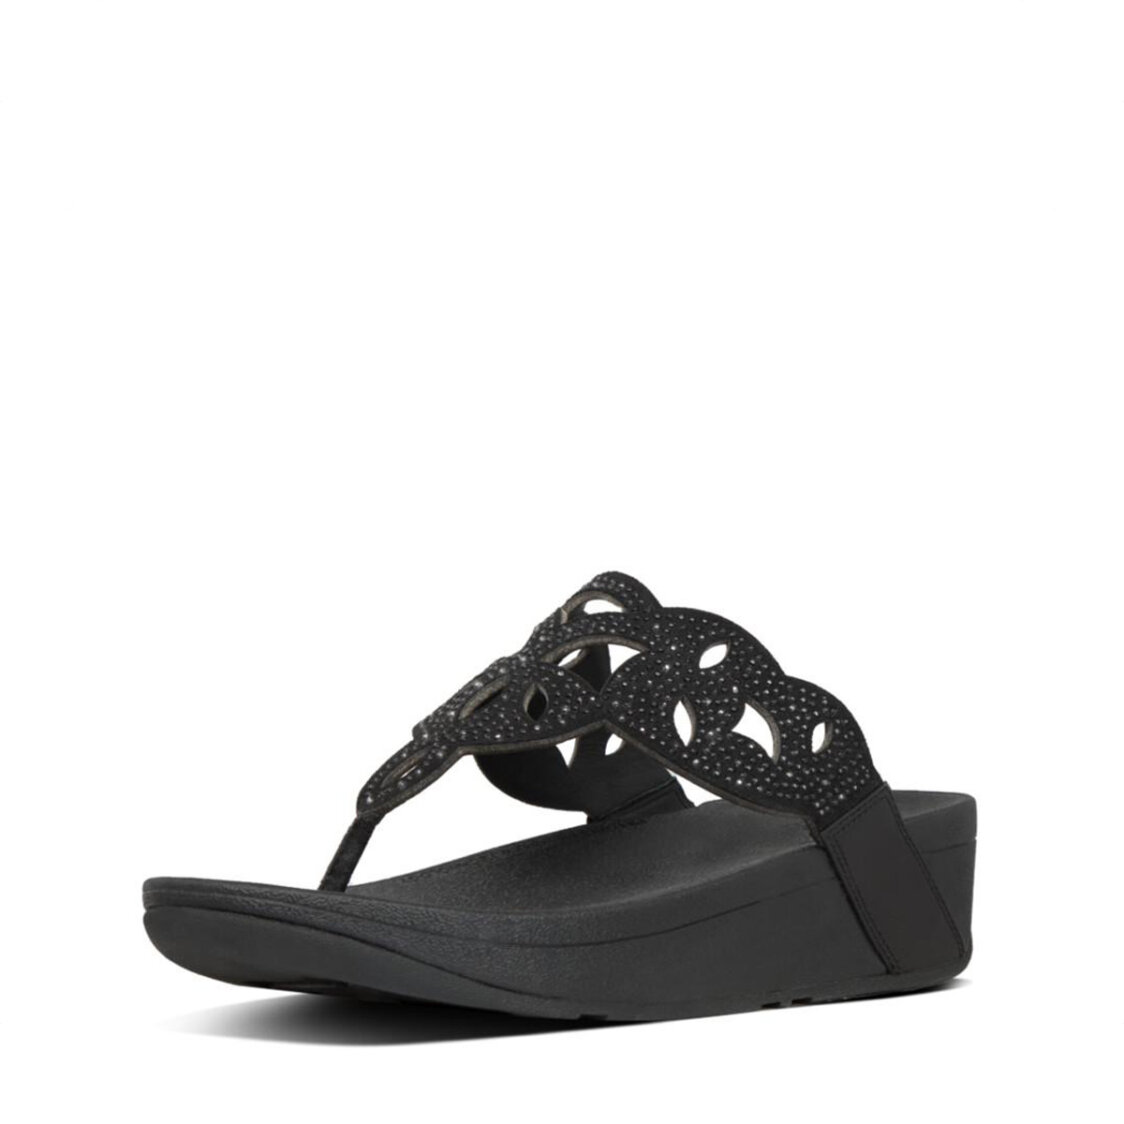 Fitflop Elora Crystal Toe-Thongs All Black